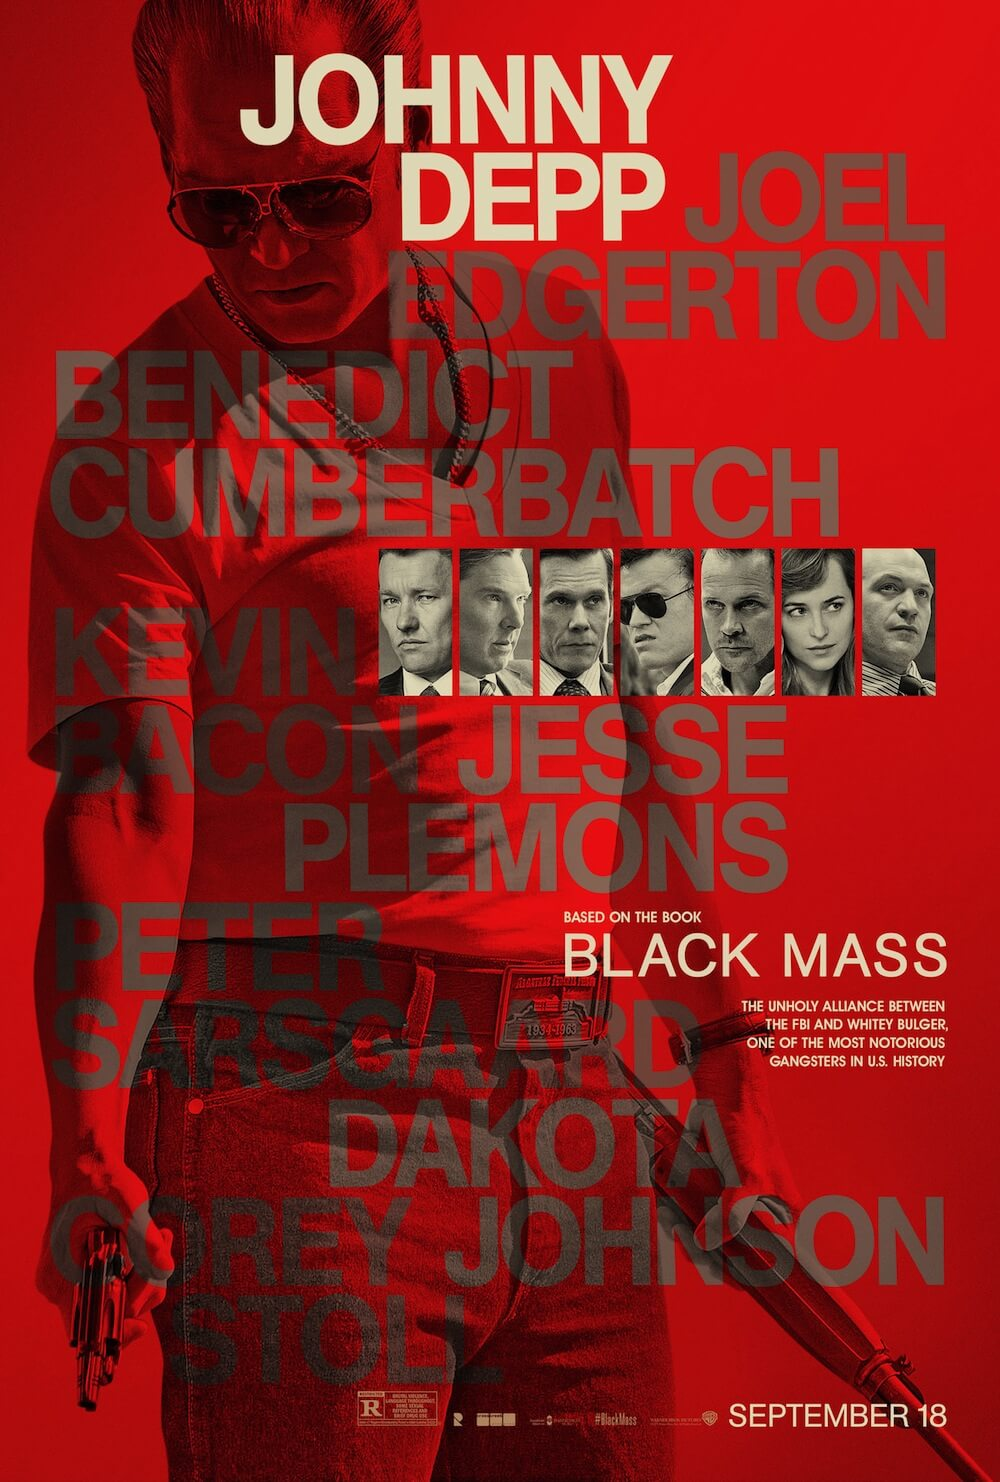 BLACK MASS character posters showcase the main cast in red